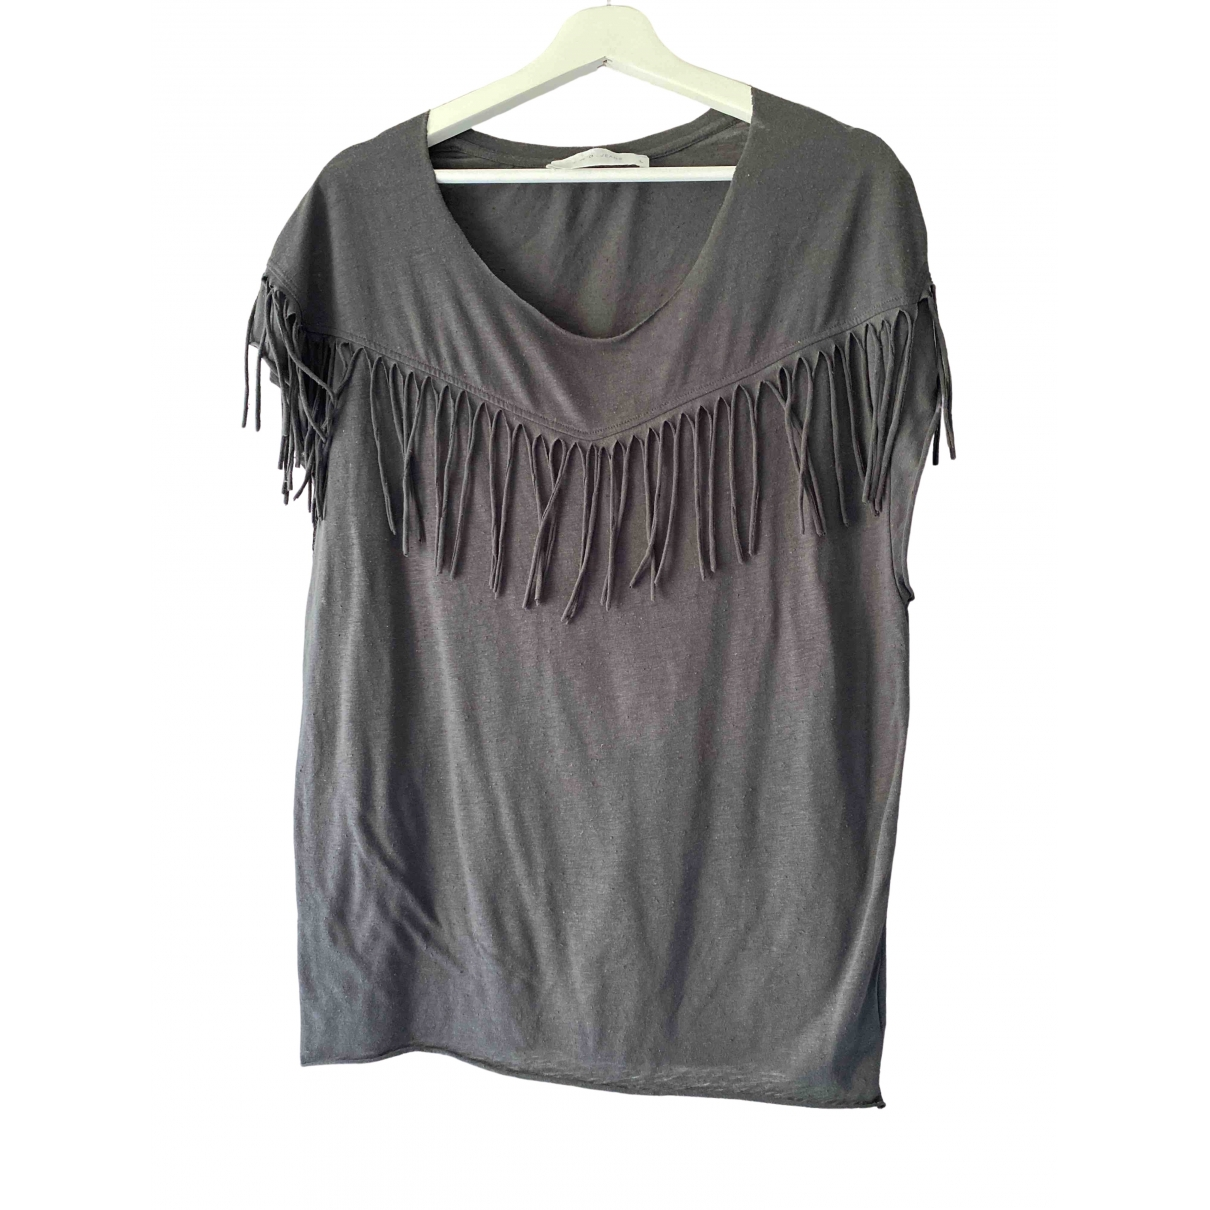 Iro \N Anthracite Cotton  top for Women L International